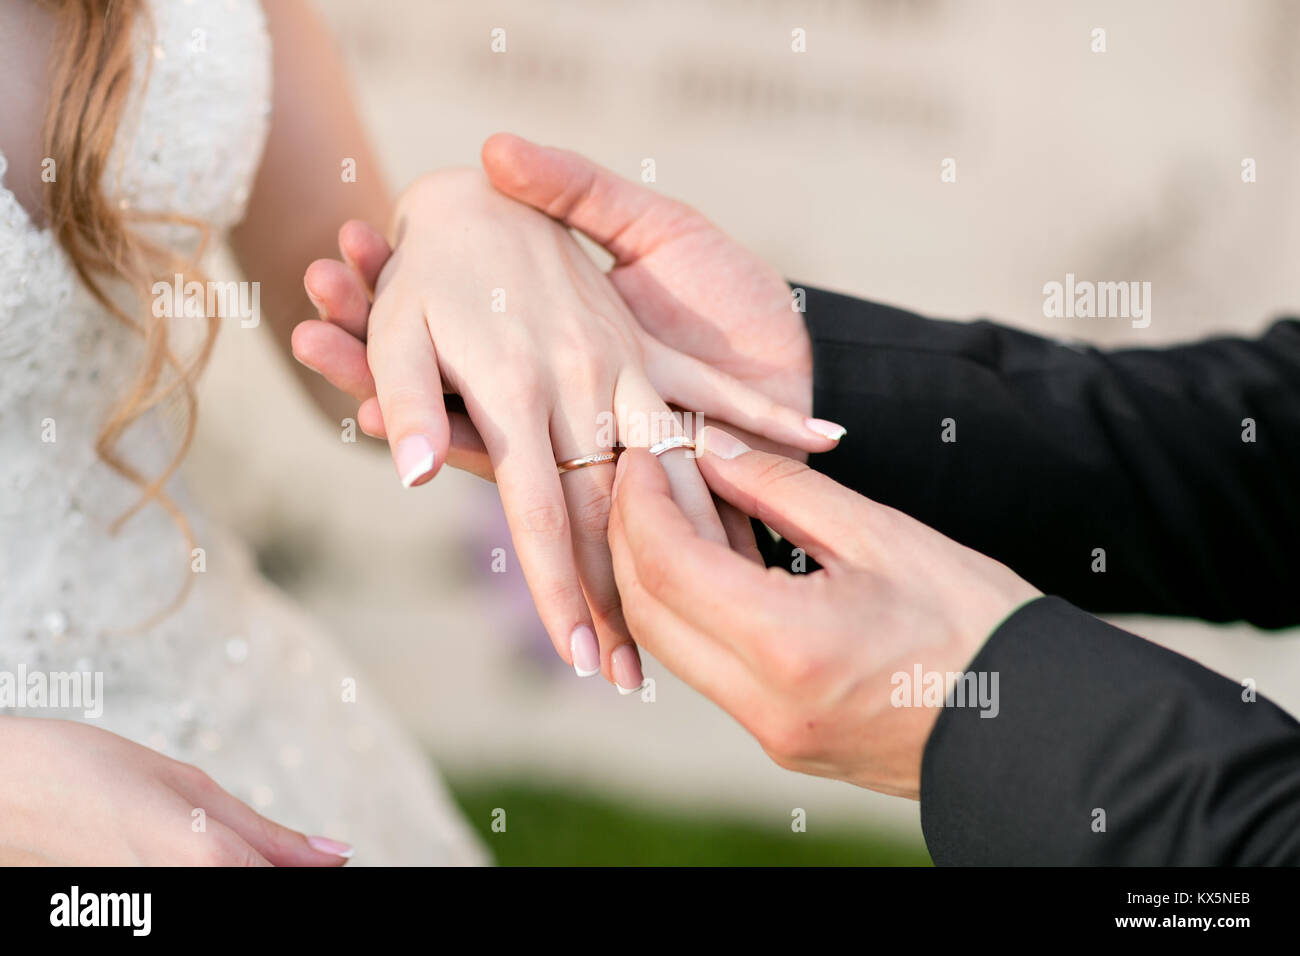 wedding rings and hands of bride and groom. young wedding couple at ...